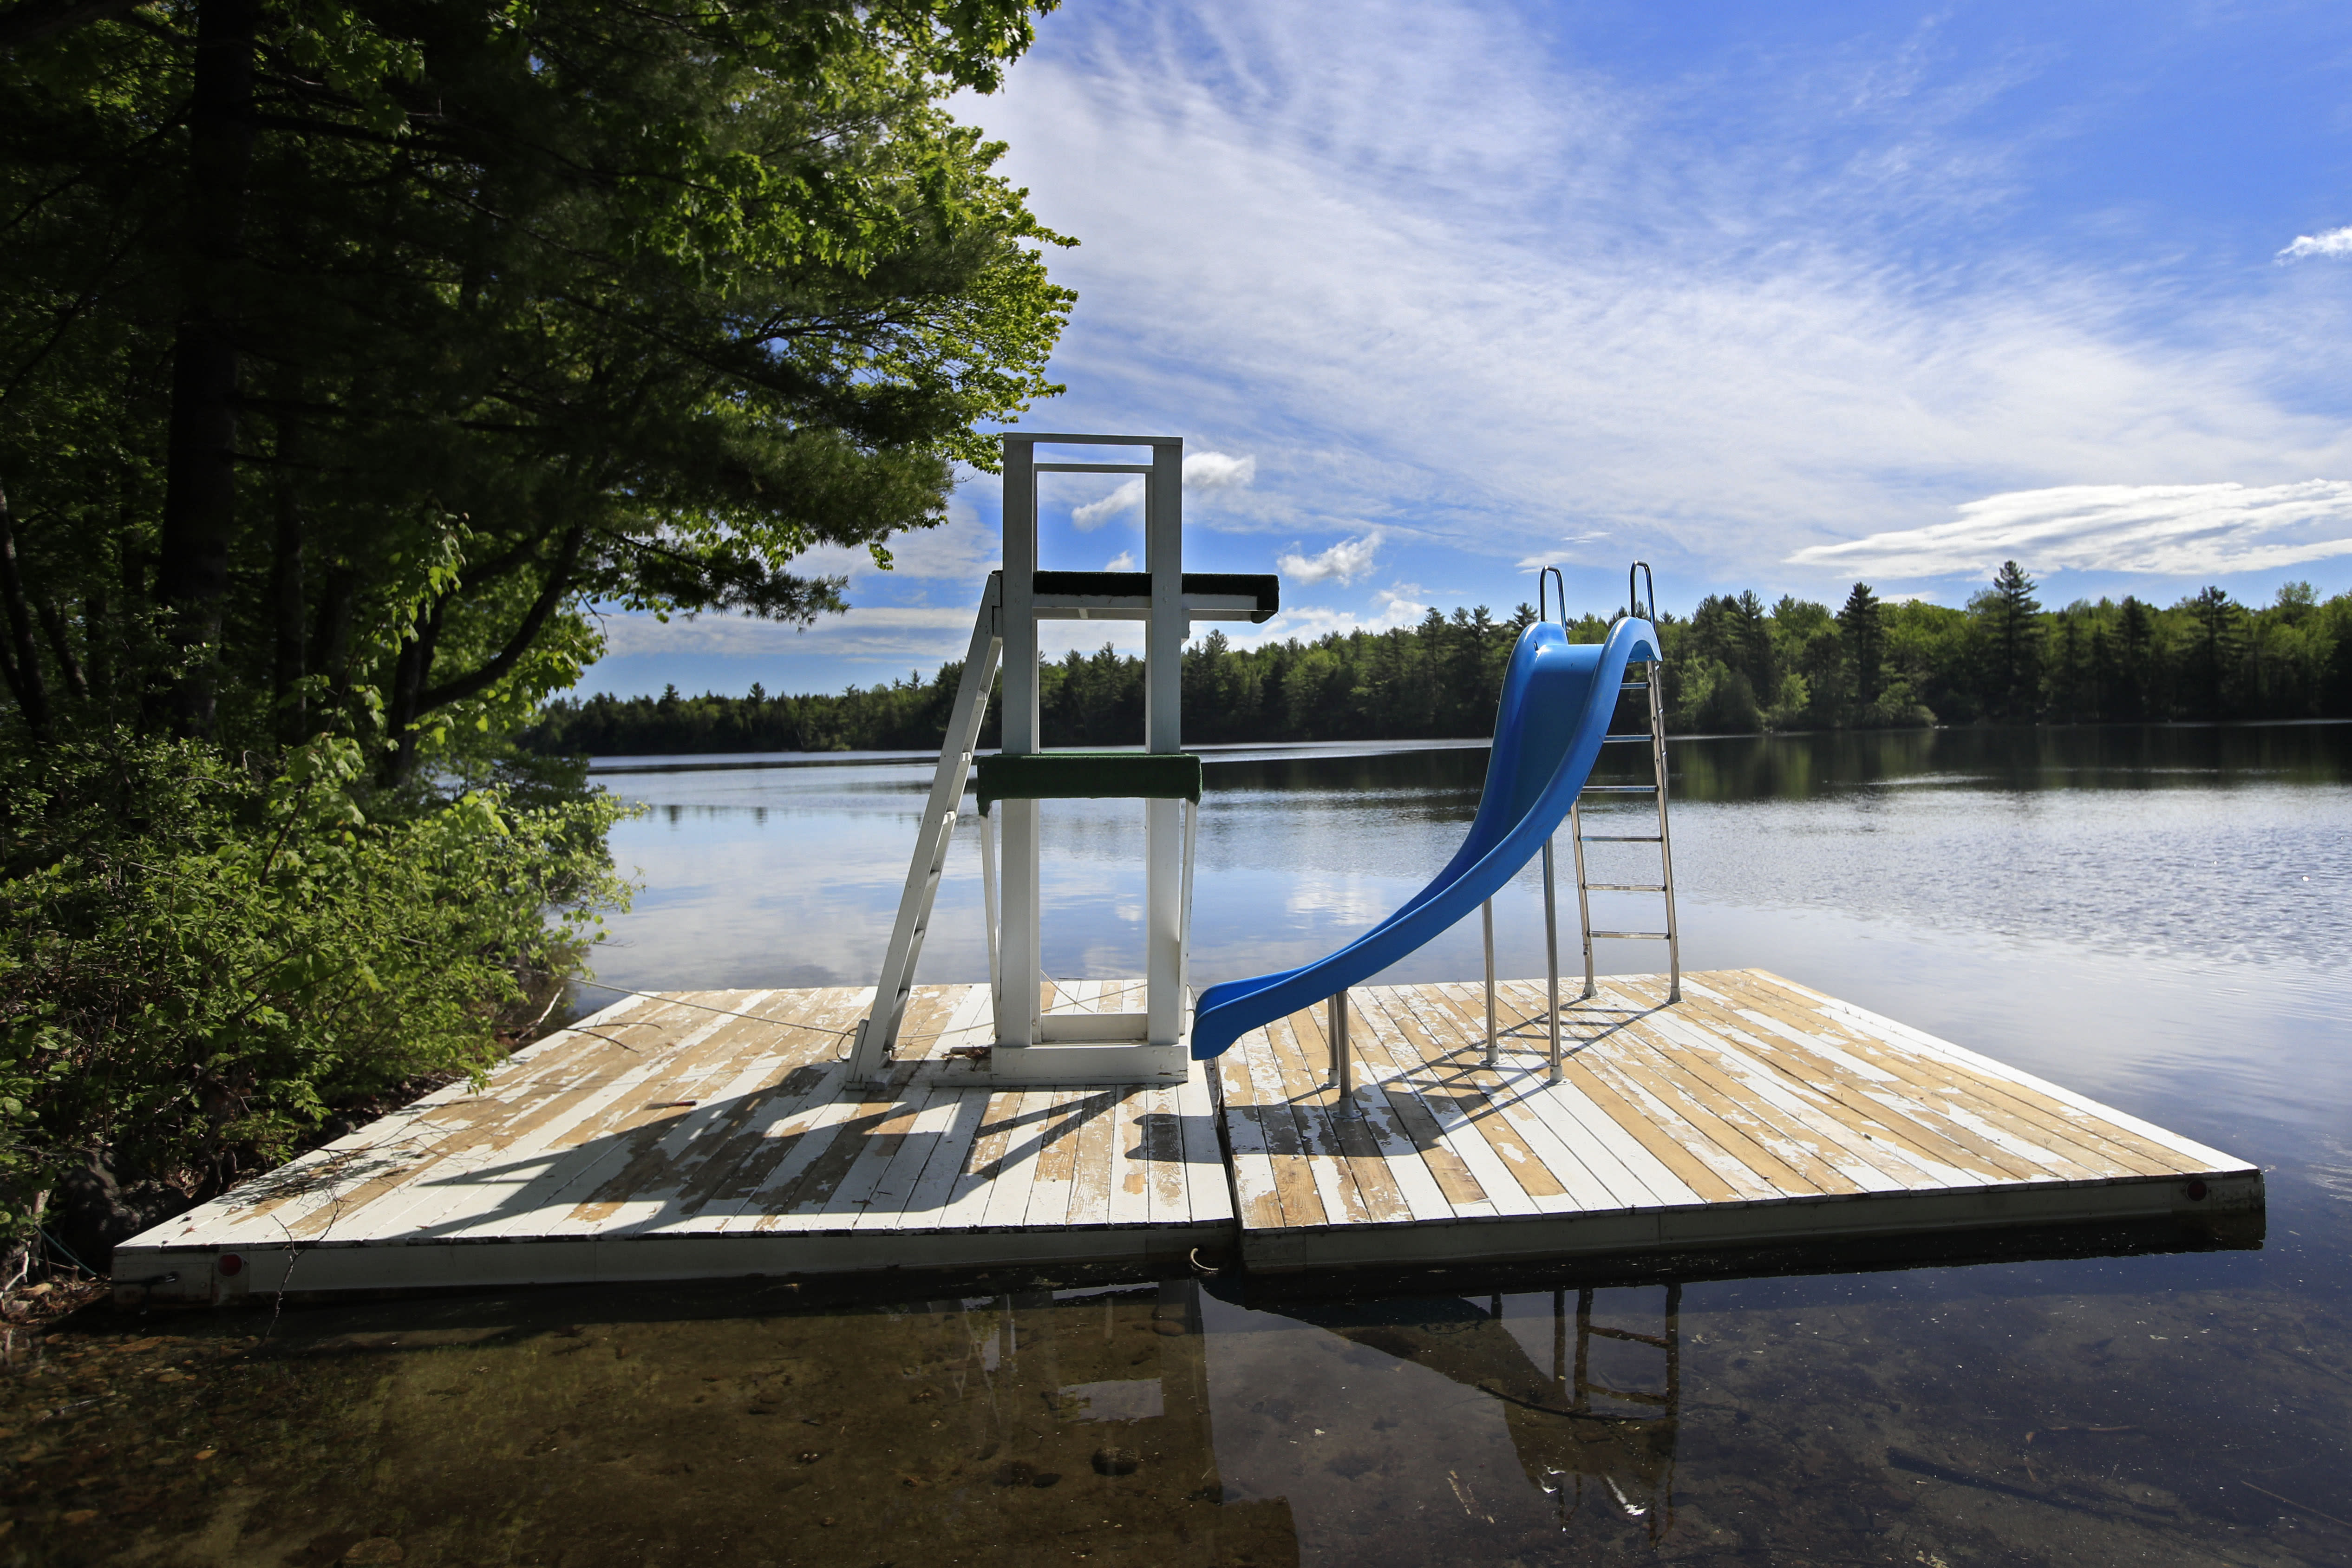 In this Thursday, June 4, 2020 photo, a slide on a floating dock is parked near the shore of Echo Lake at the the Camp Winnebago summer camp, in Fayette, Maine. The boys camp is going ahead with plans to open with a reduction in the number of campers and other changes to comply with guidelines for helping prevent the spread of the coronavirus. Many of the nation's 15,000-plus summer camps opting to close because of health concerns surrounding the pandemic, or because of delays in receiving rules or guidelines from licensing officials. (AP Photo/Robert F. Bukaty)